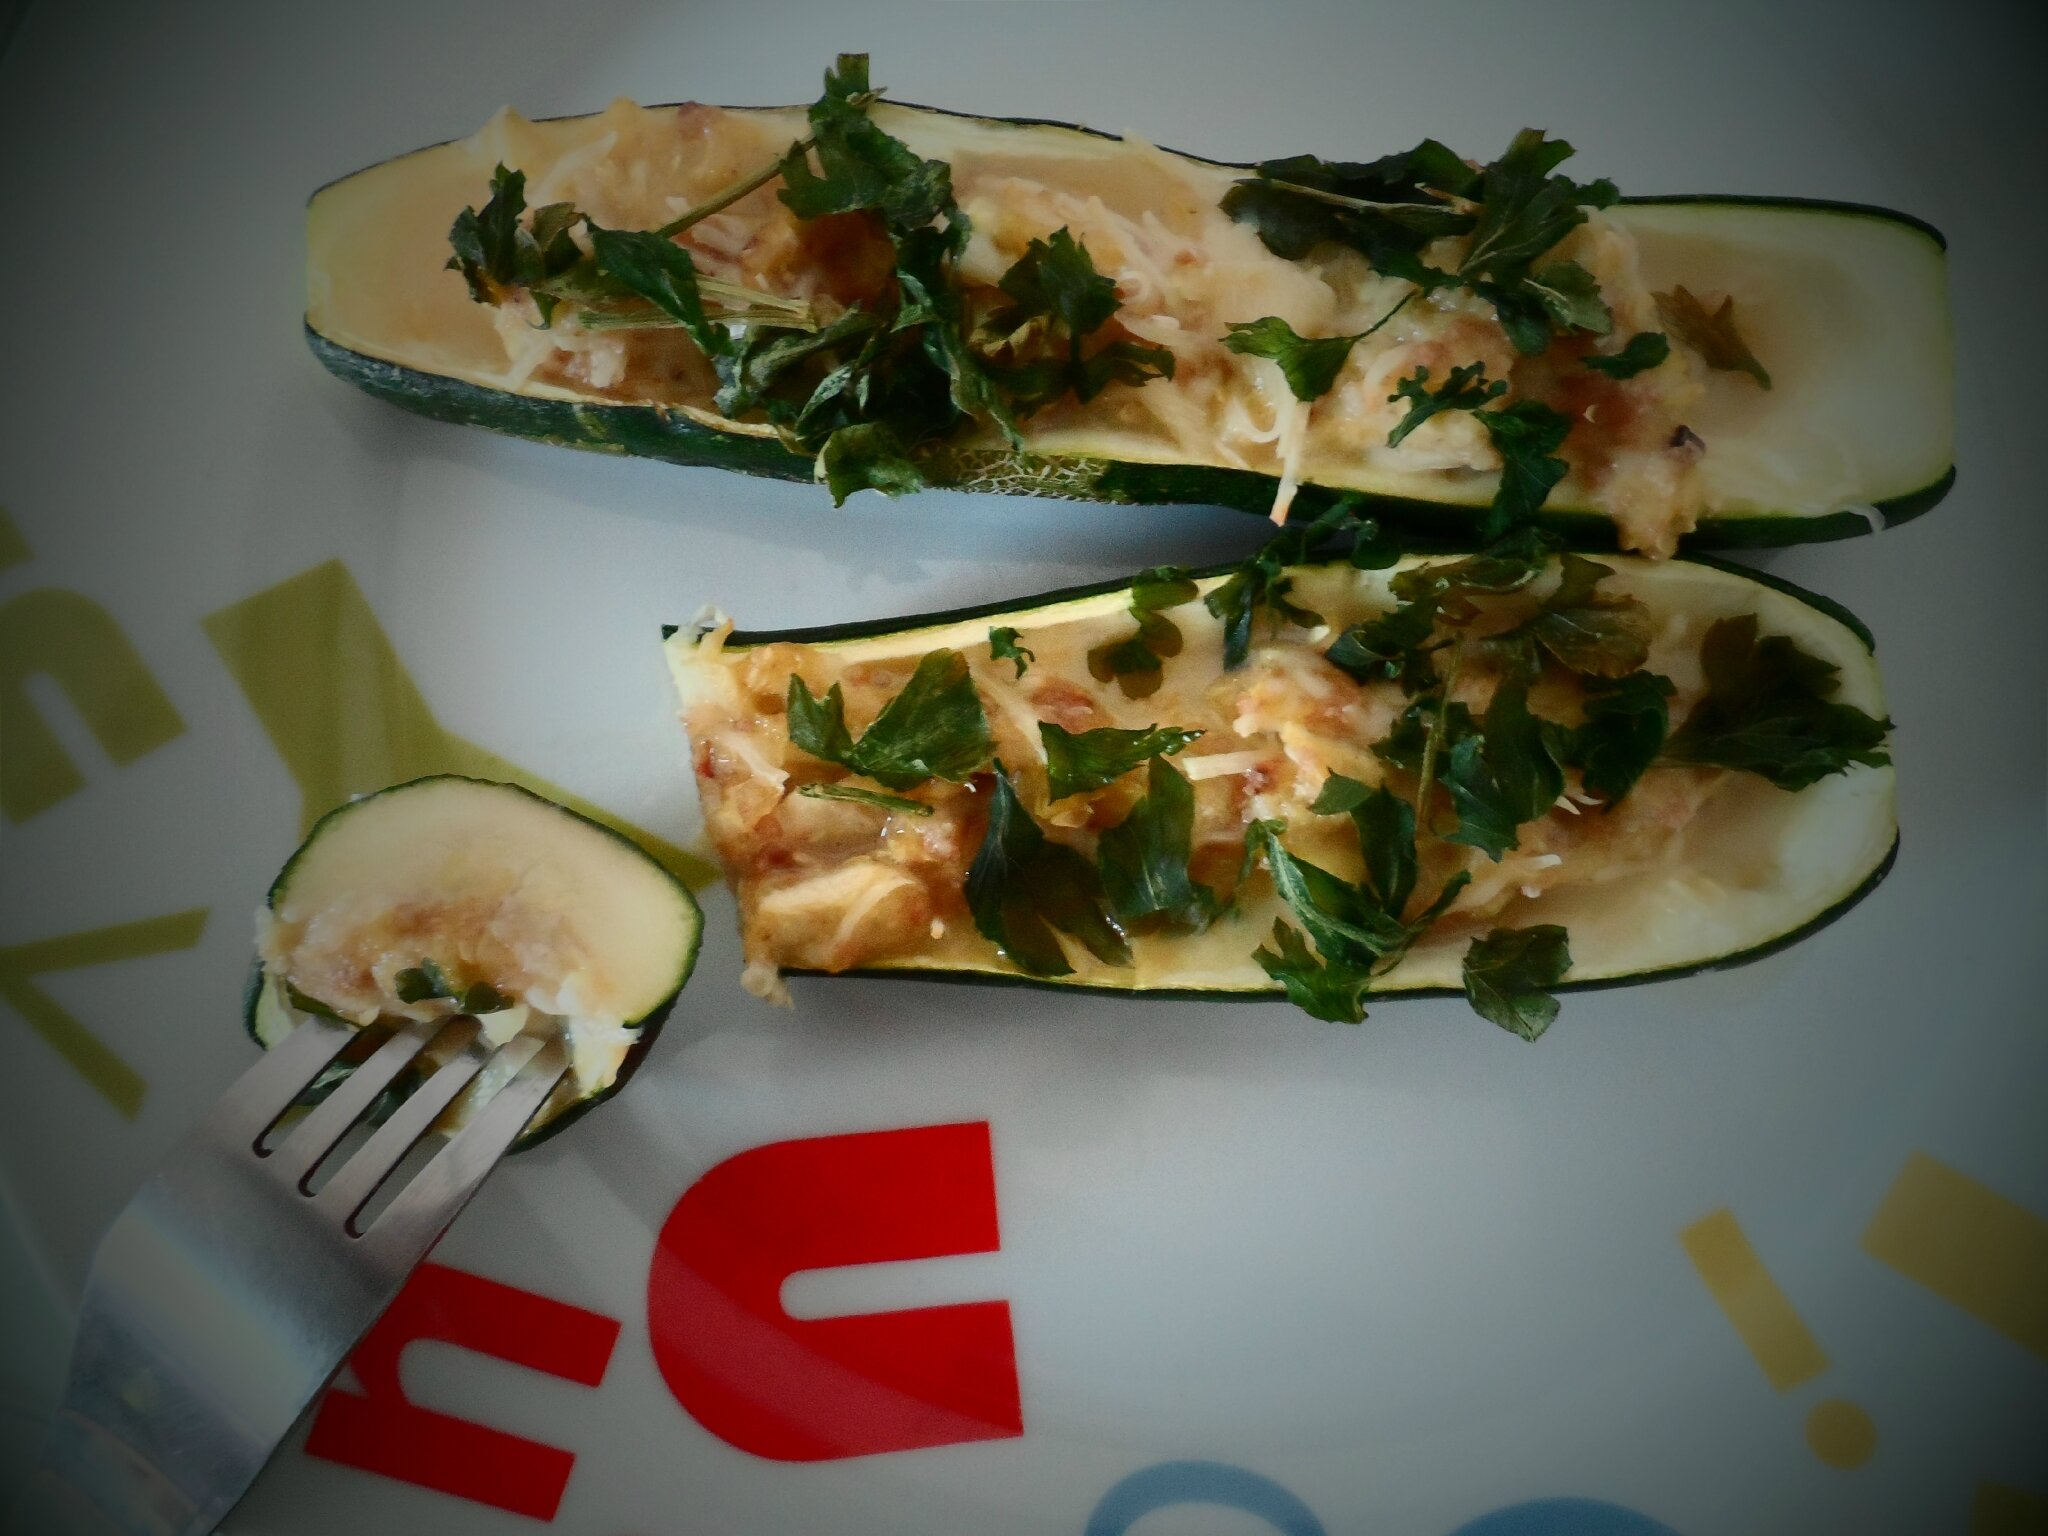 COURGETTES A L'ITALIENNE